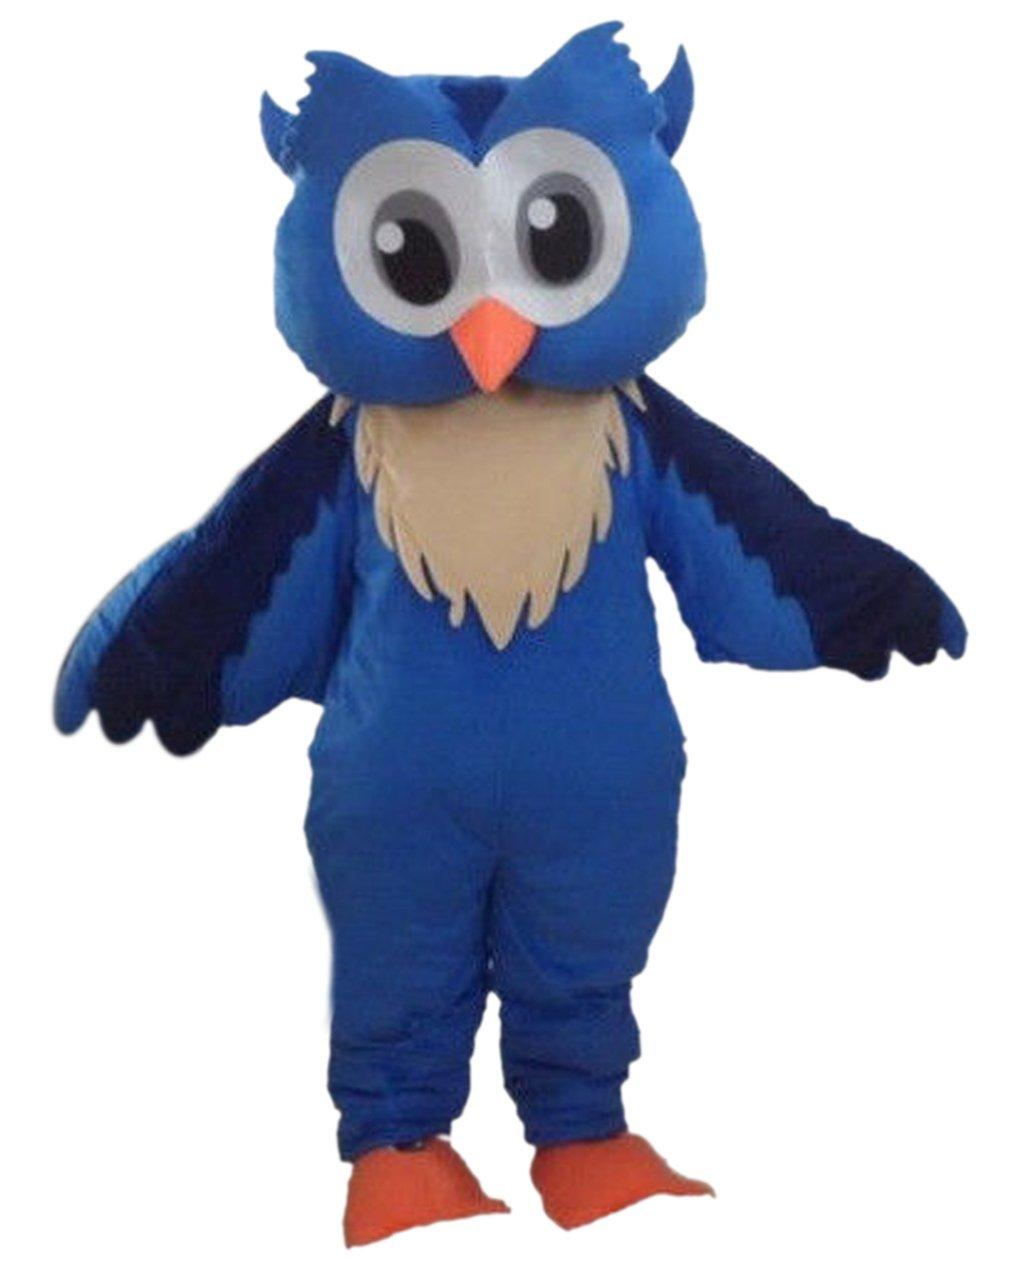 Owl Mascot Costume Custom Mascot Carnival Fancy Dress Costumes School Mascot College Mascot Spartan Mascot Costumes Mascot Costumes Rental From Qq371858377 ...  sc 1 st  DHgate.com & Owl Mascot Costume Custom Mascot Carnival Fancy Dress Costumes ...